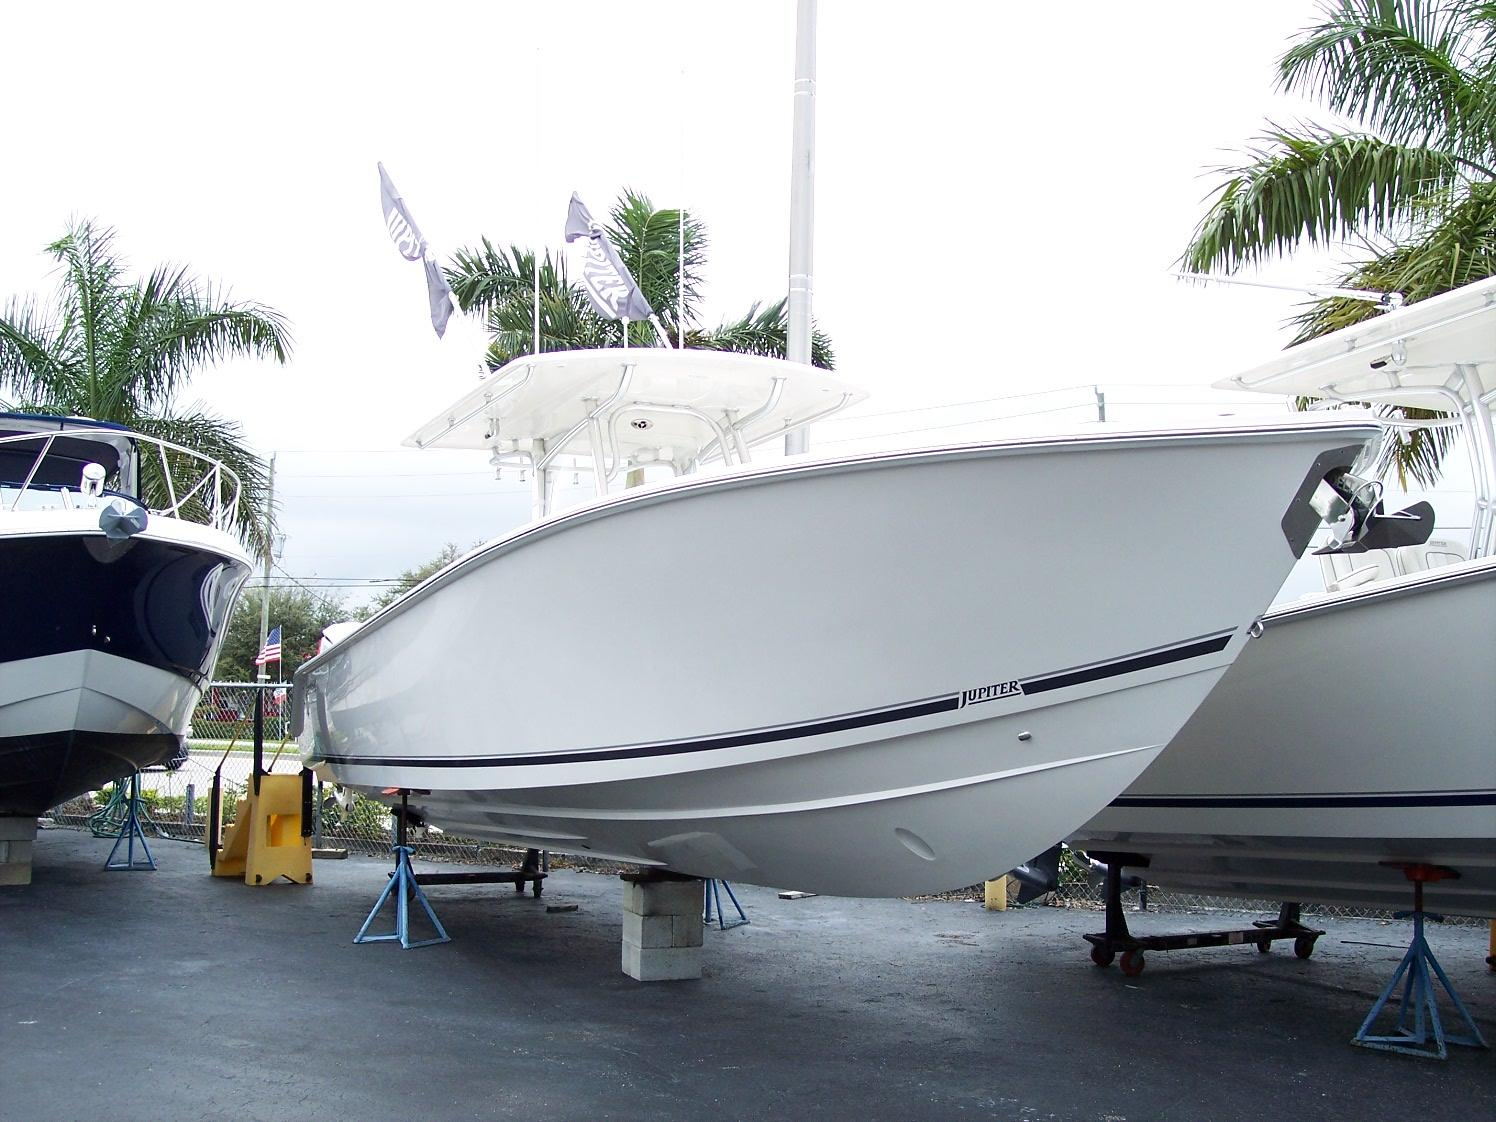 2018 Jupiter 38 FS Hybrid Power Boat For Sale